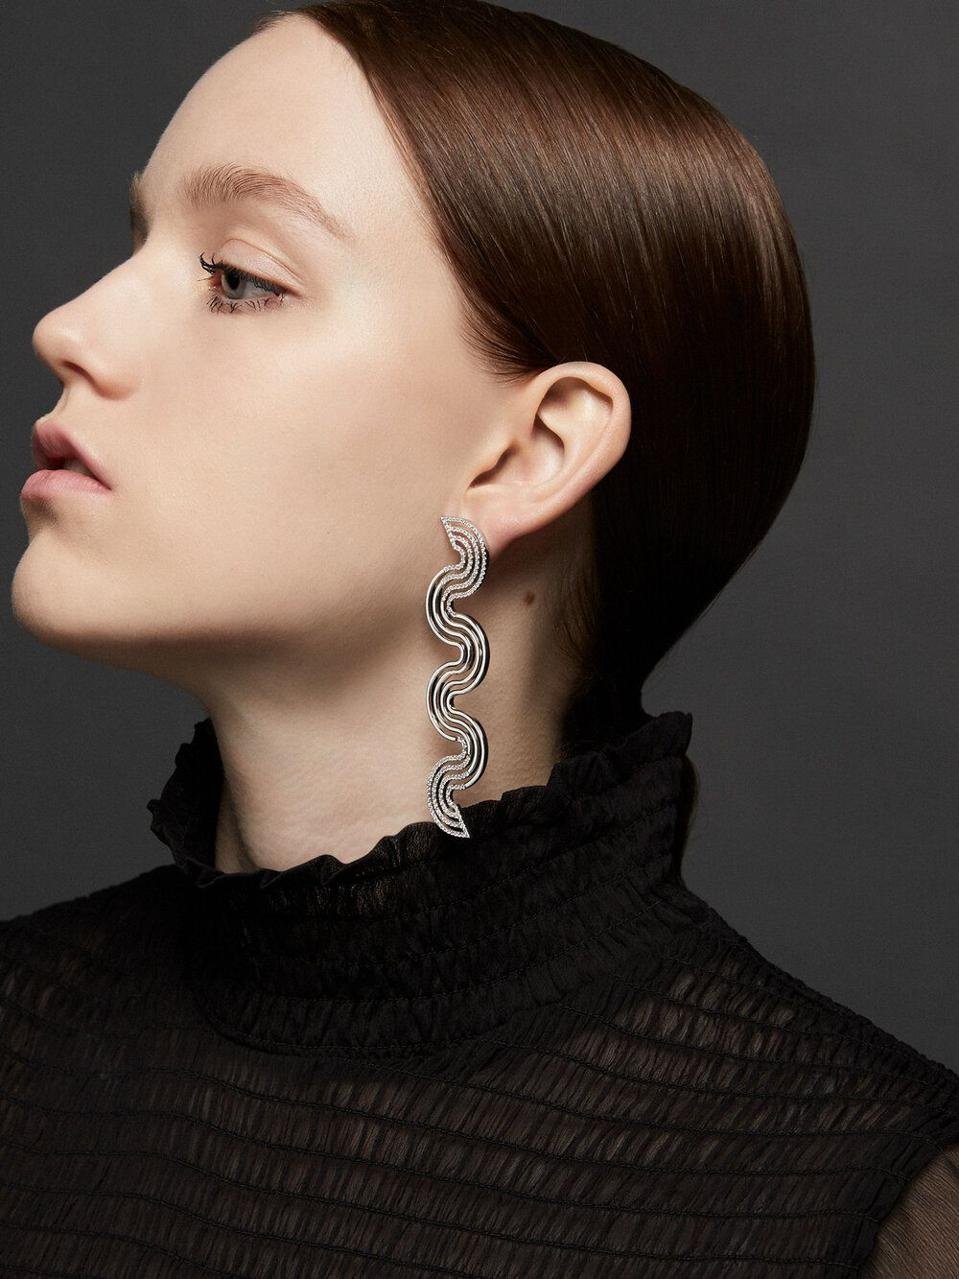 These dynamic, sculptural earrings feature black enamel and diamonds, which creates the effect of movement.